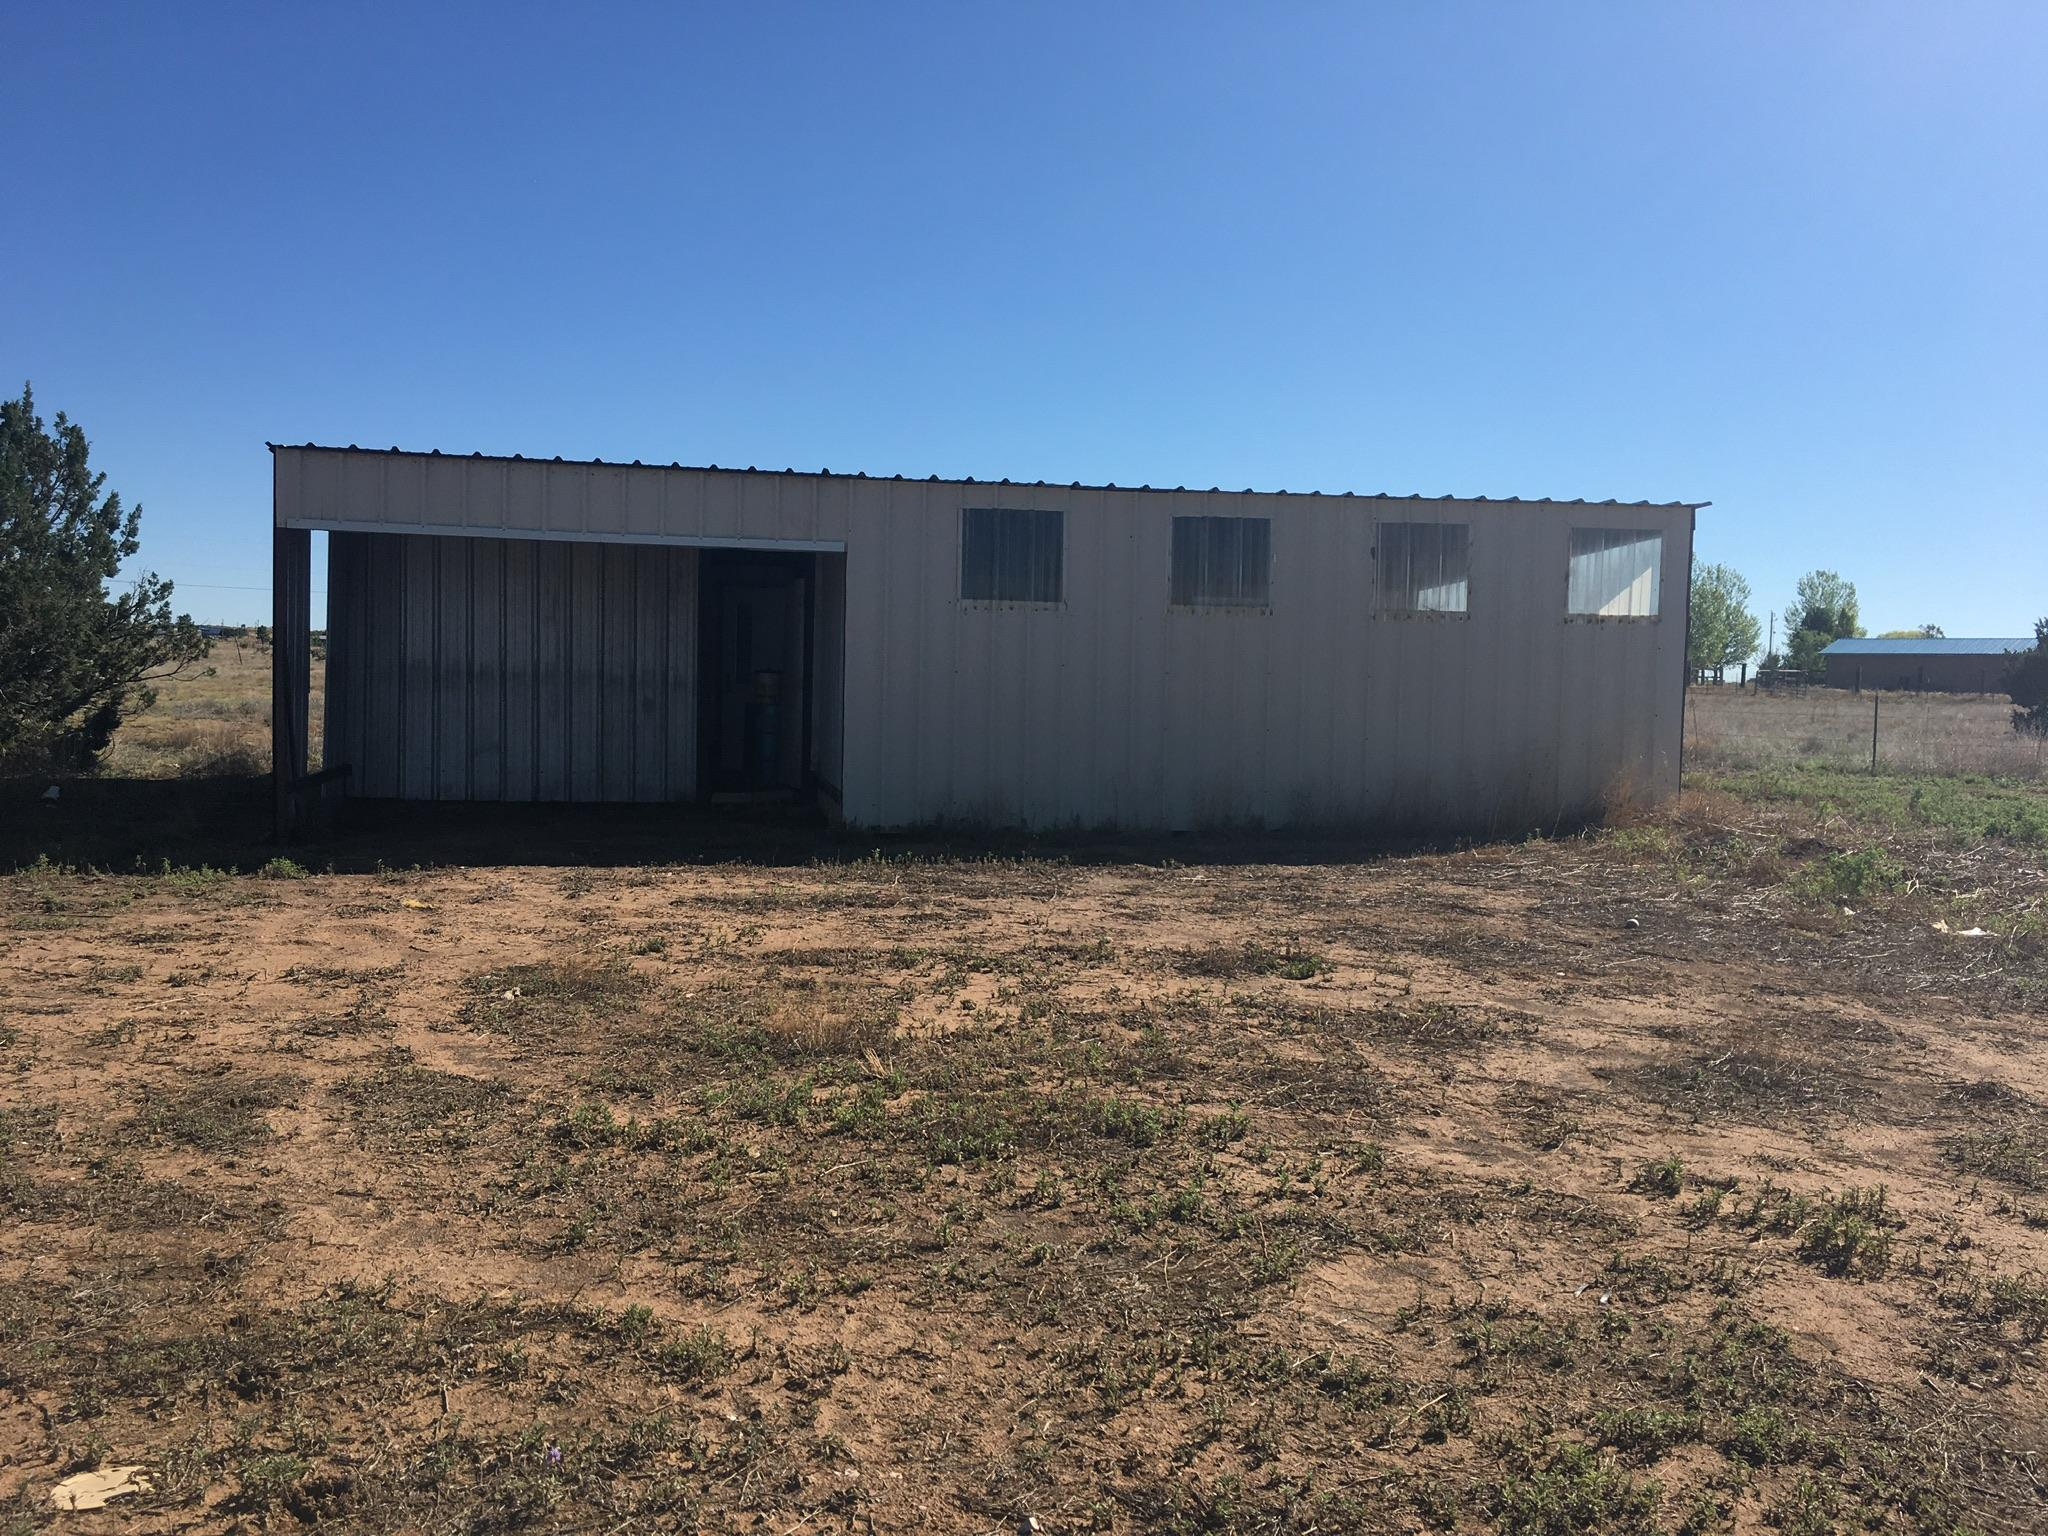 Totally remodeled 3 bedroom 2 bathroom with large 2 car garage and barn.  Sit on just over 6.24 acres wooded and nice flat areas for livestock. One of a kind